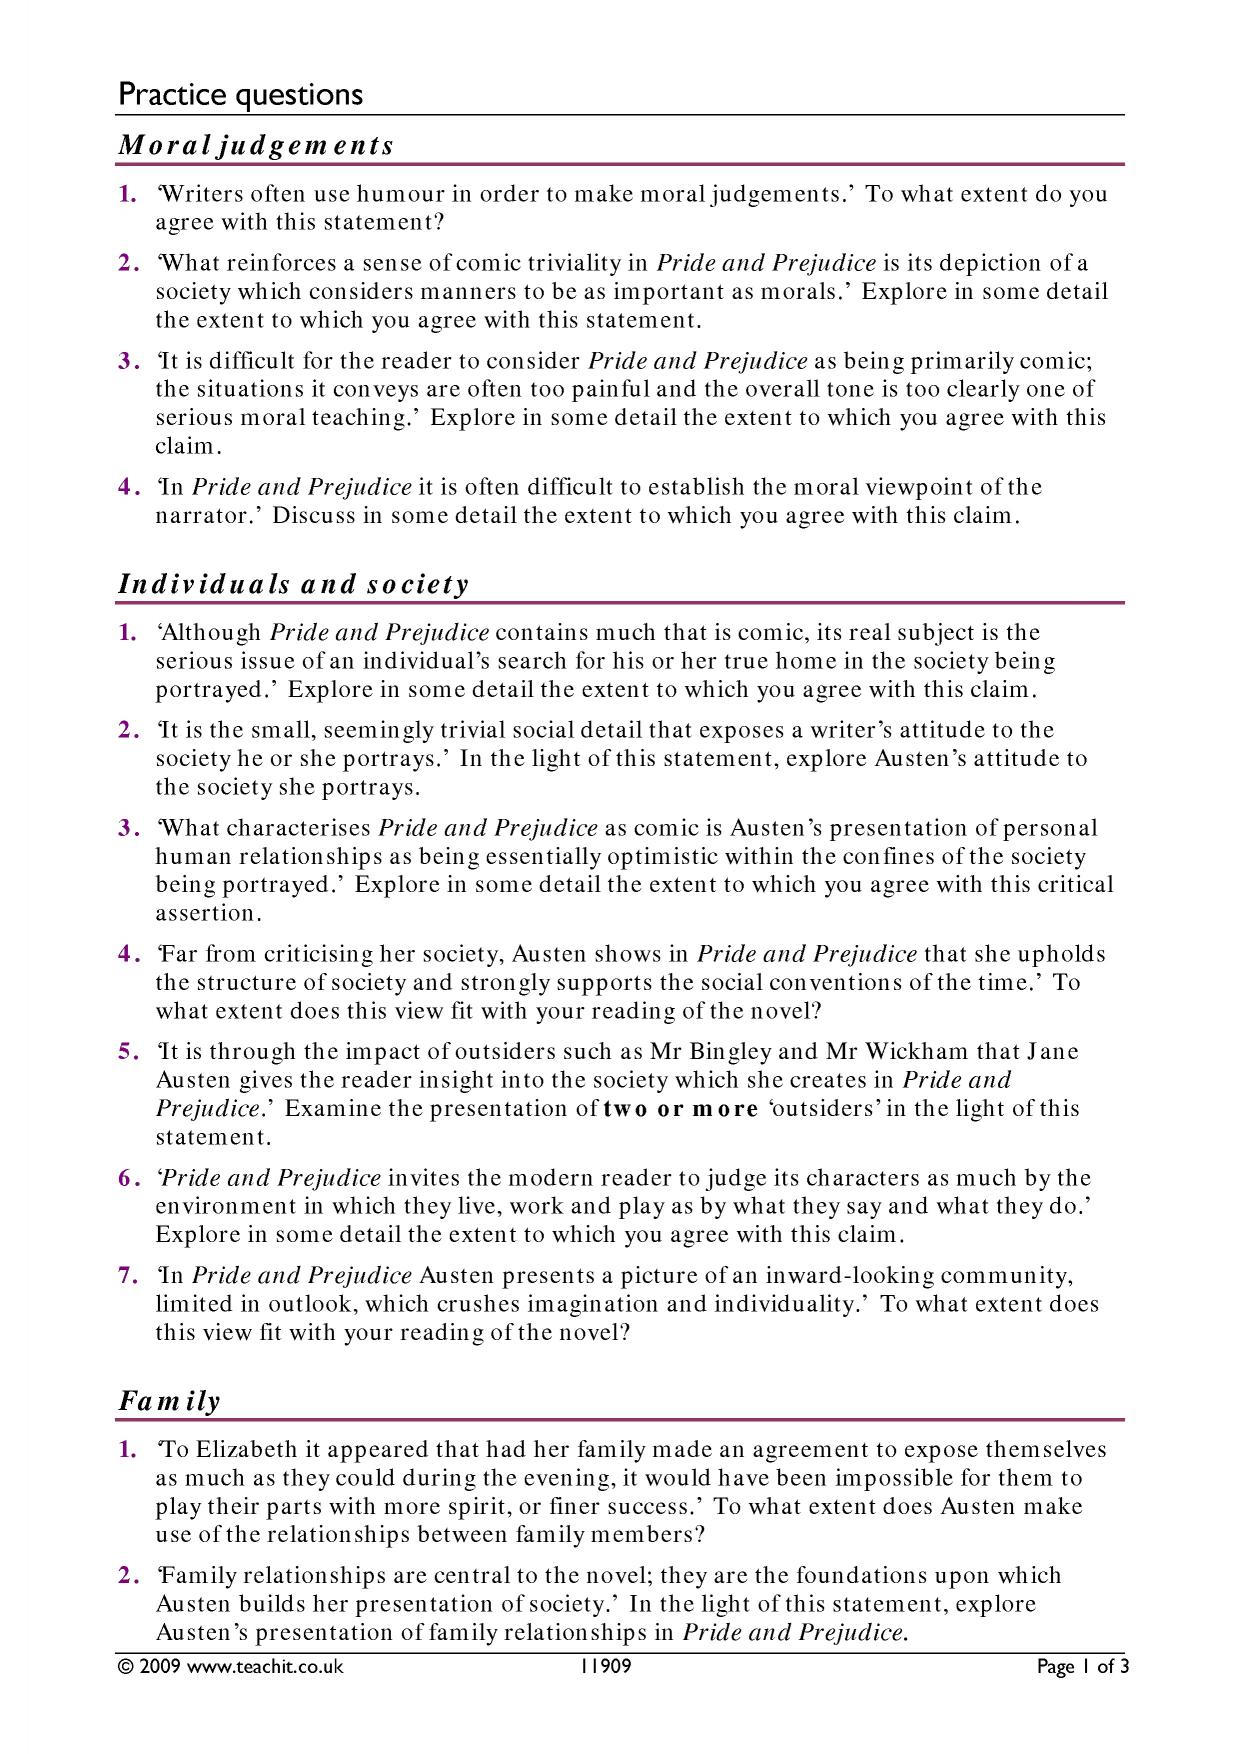 006 Essay Example Prejudice Pride And By Jane Austen Ks3 Write An On Goes Before Fall X My Nepal Country How Wonderful To Kill A Mockingbird Title Theme Topics Full